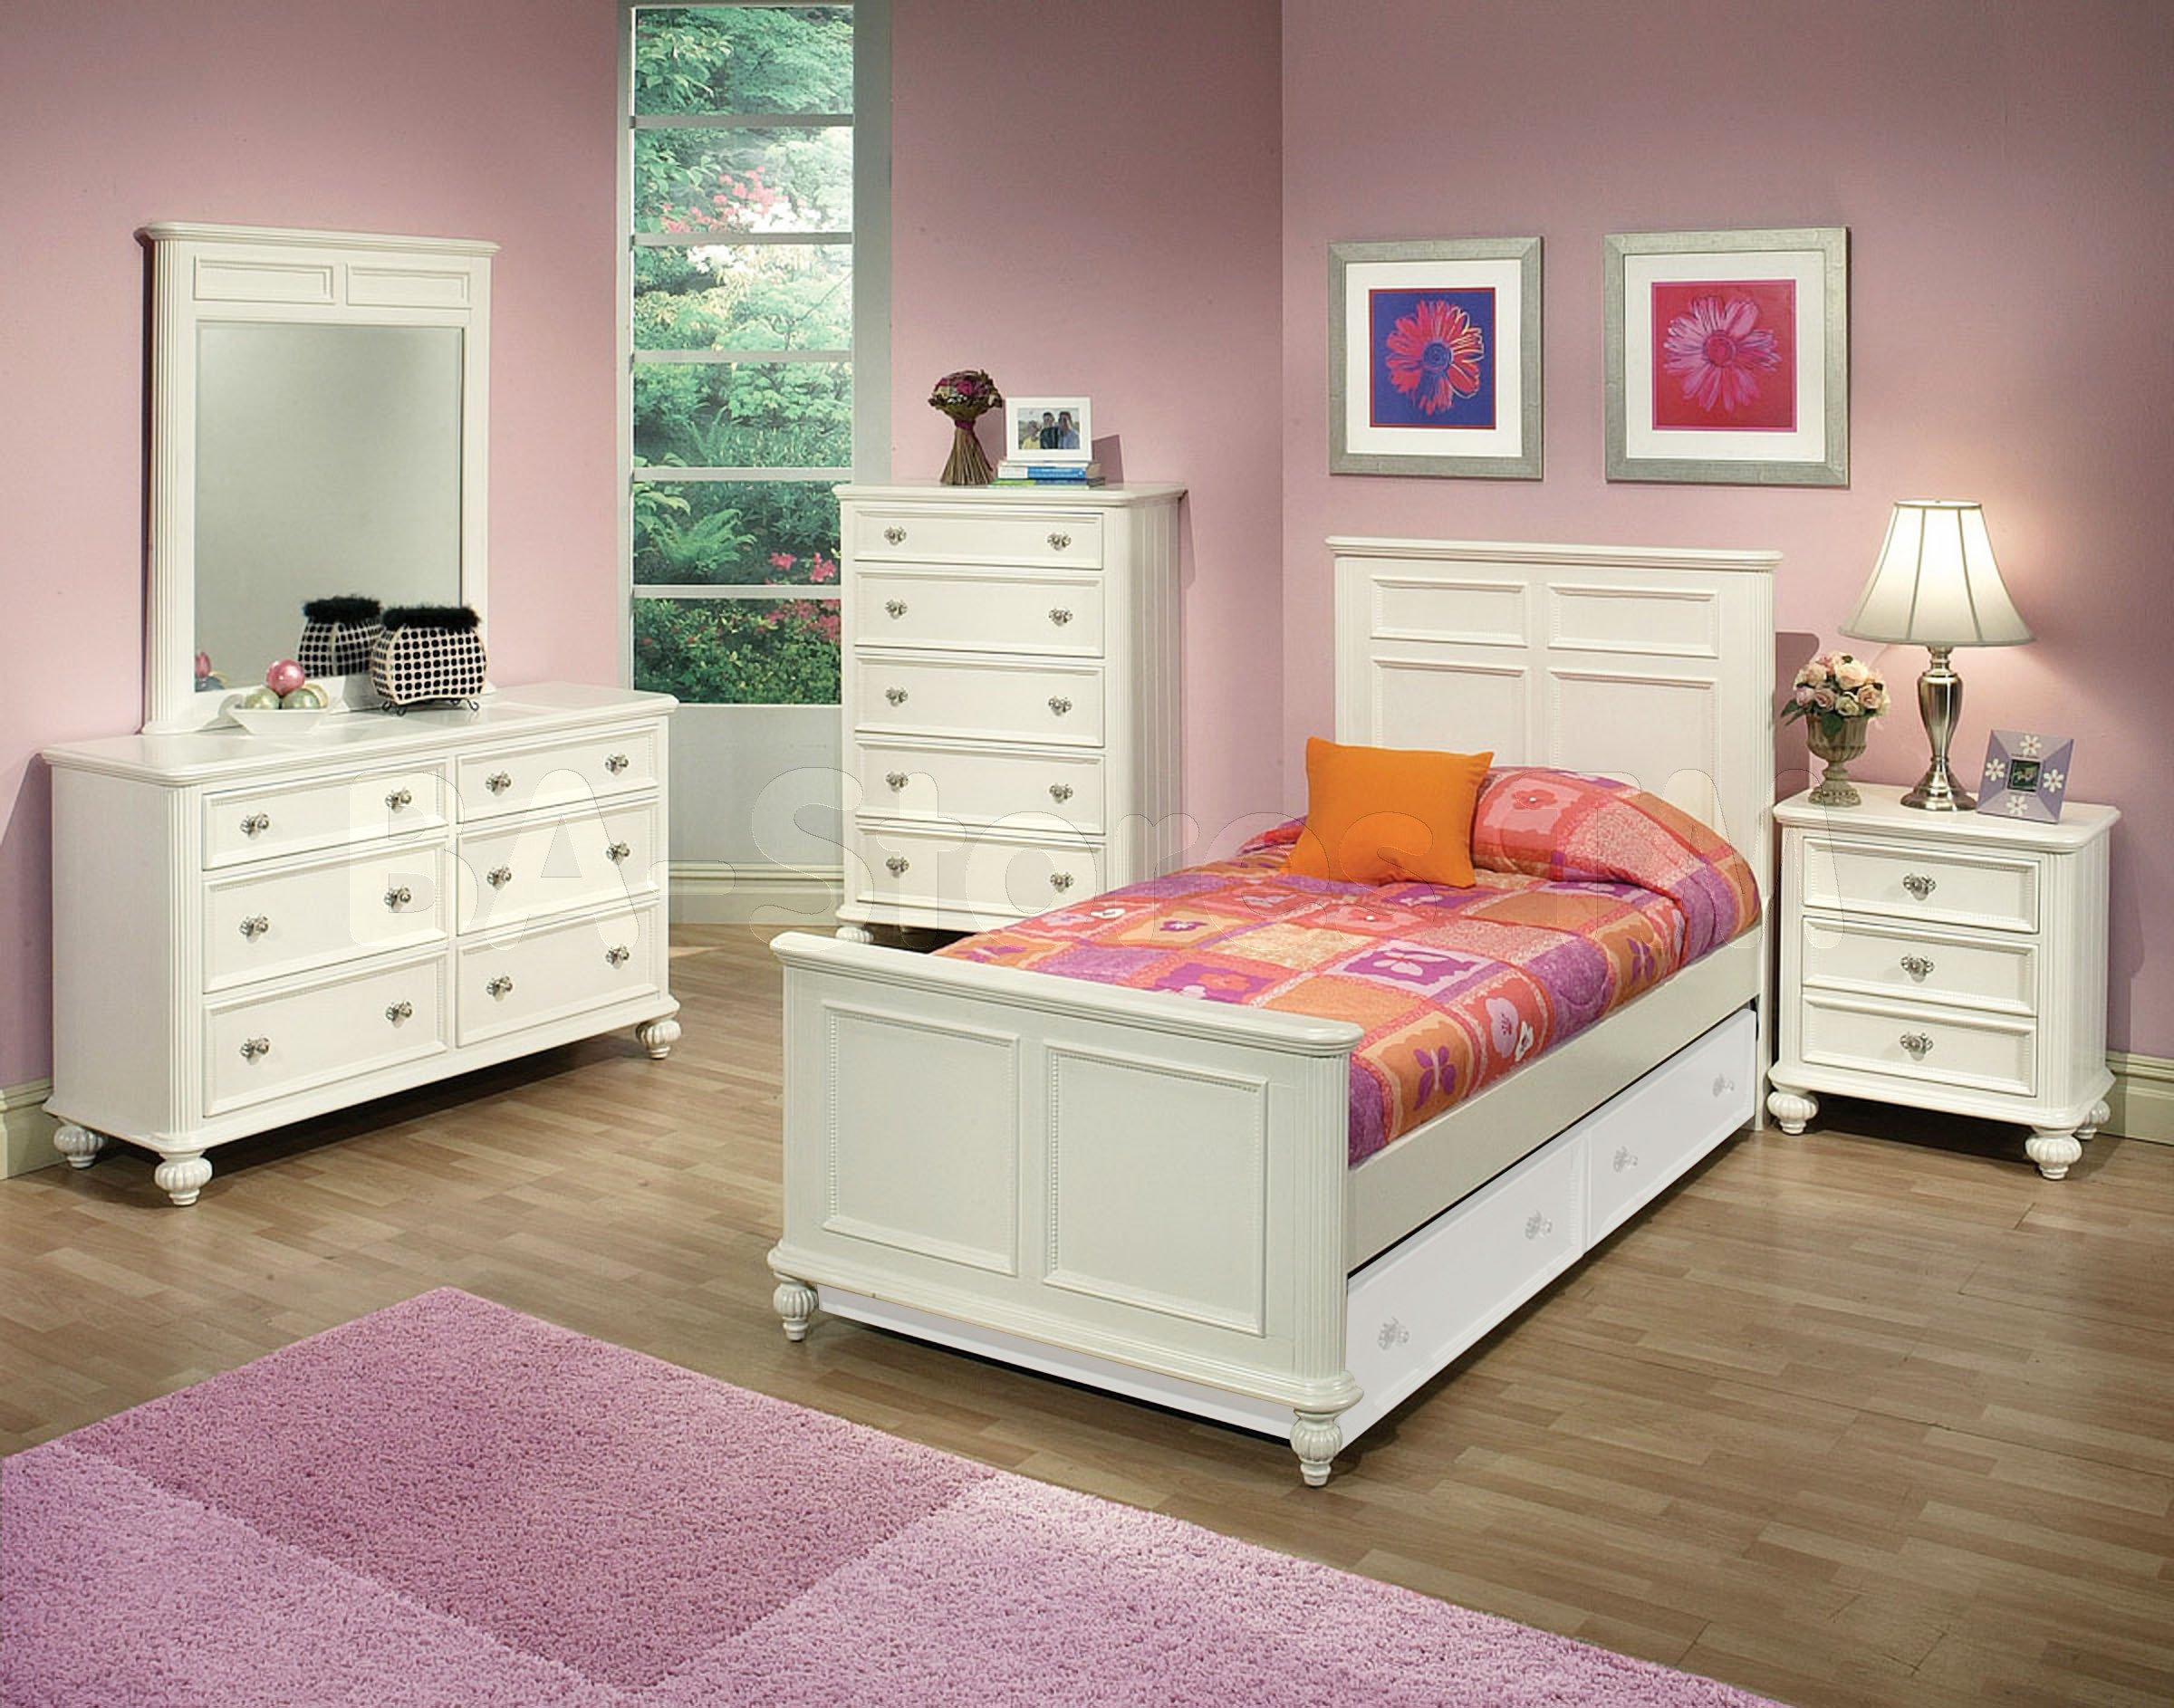 kid bedroom set solid wood bedroom furniture for 20 tips for best 11930